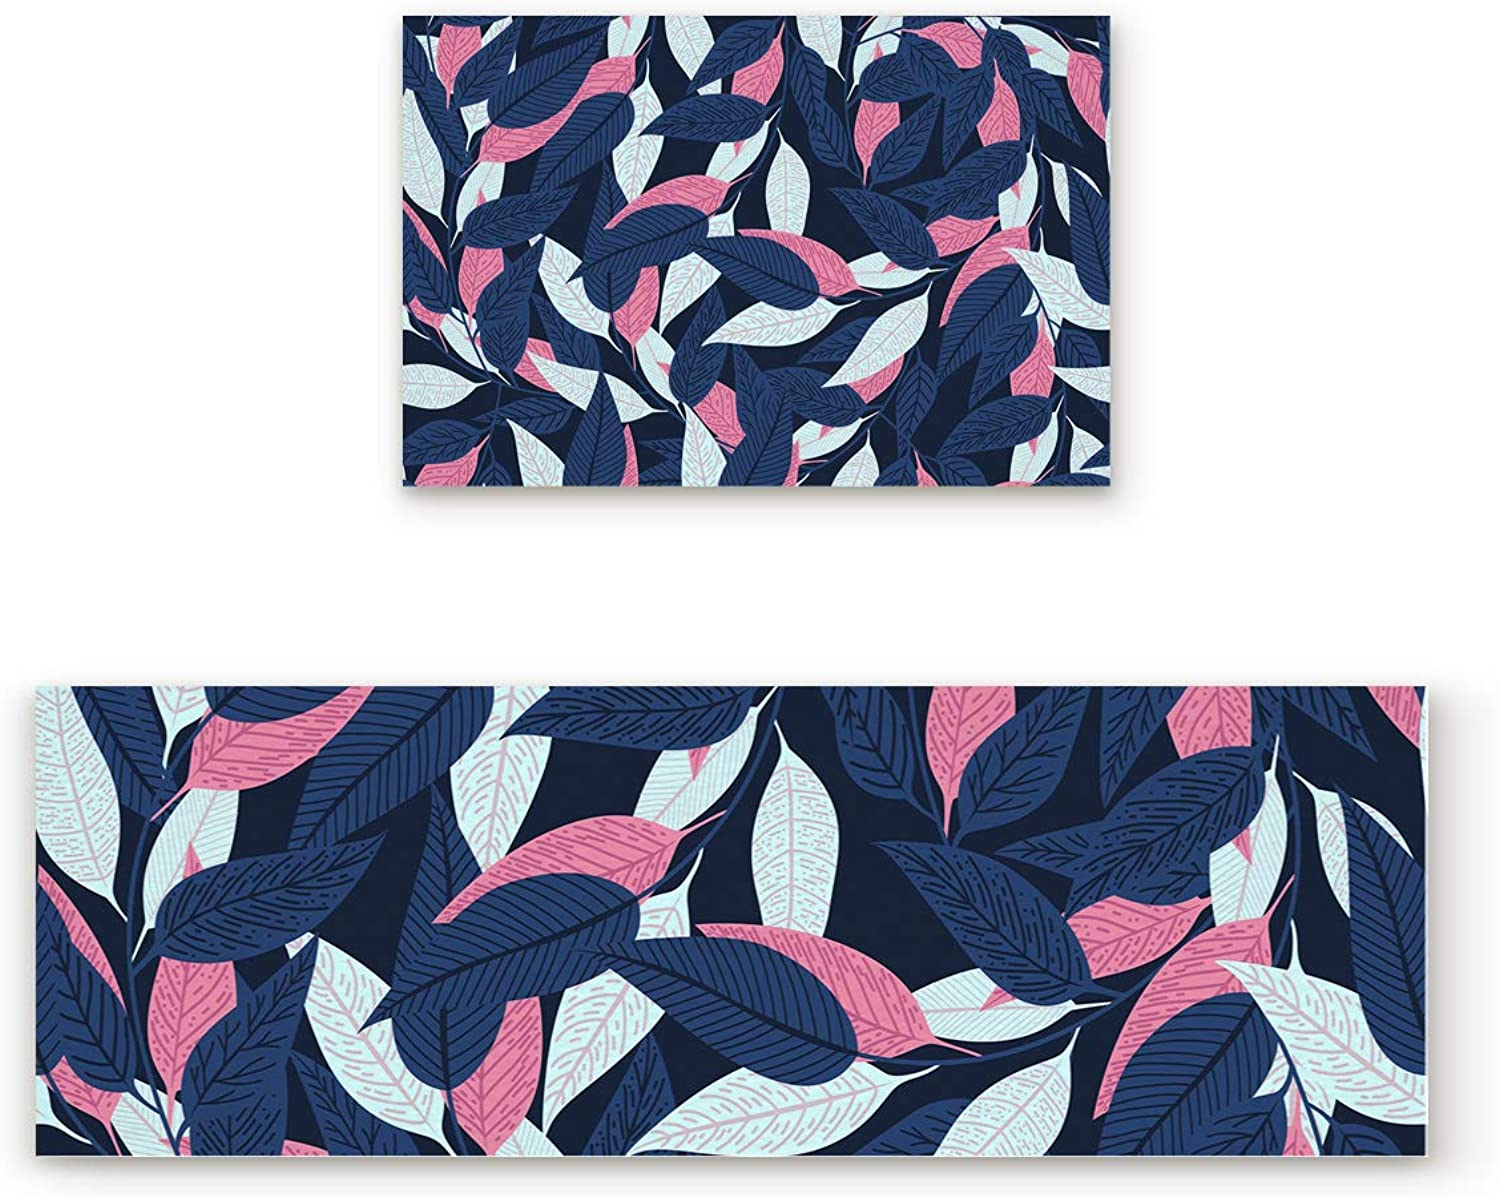 Shine-Home 2 Piece Non-Slip Kitchen Mat Doormat Runner Rug Set,Kids Area Rug Carpet Bedroom Rug Hawaiian Tropical Leaves and Summer Autumn Time Forest Geometrical Nature Image,19.7x31.5IN+19.7x63IN